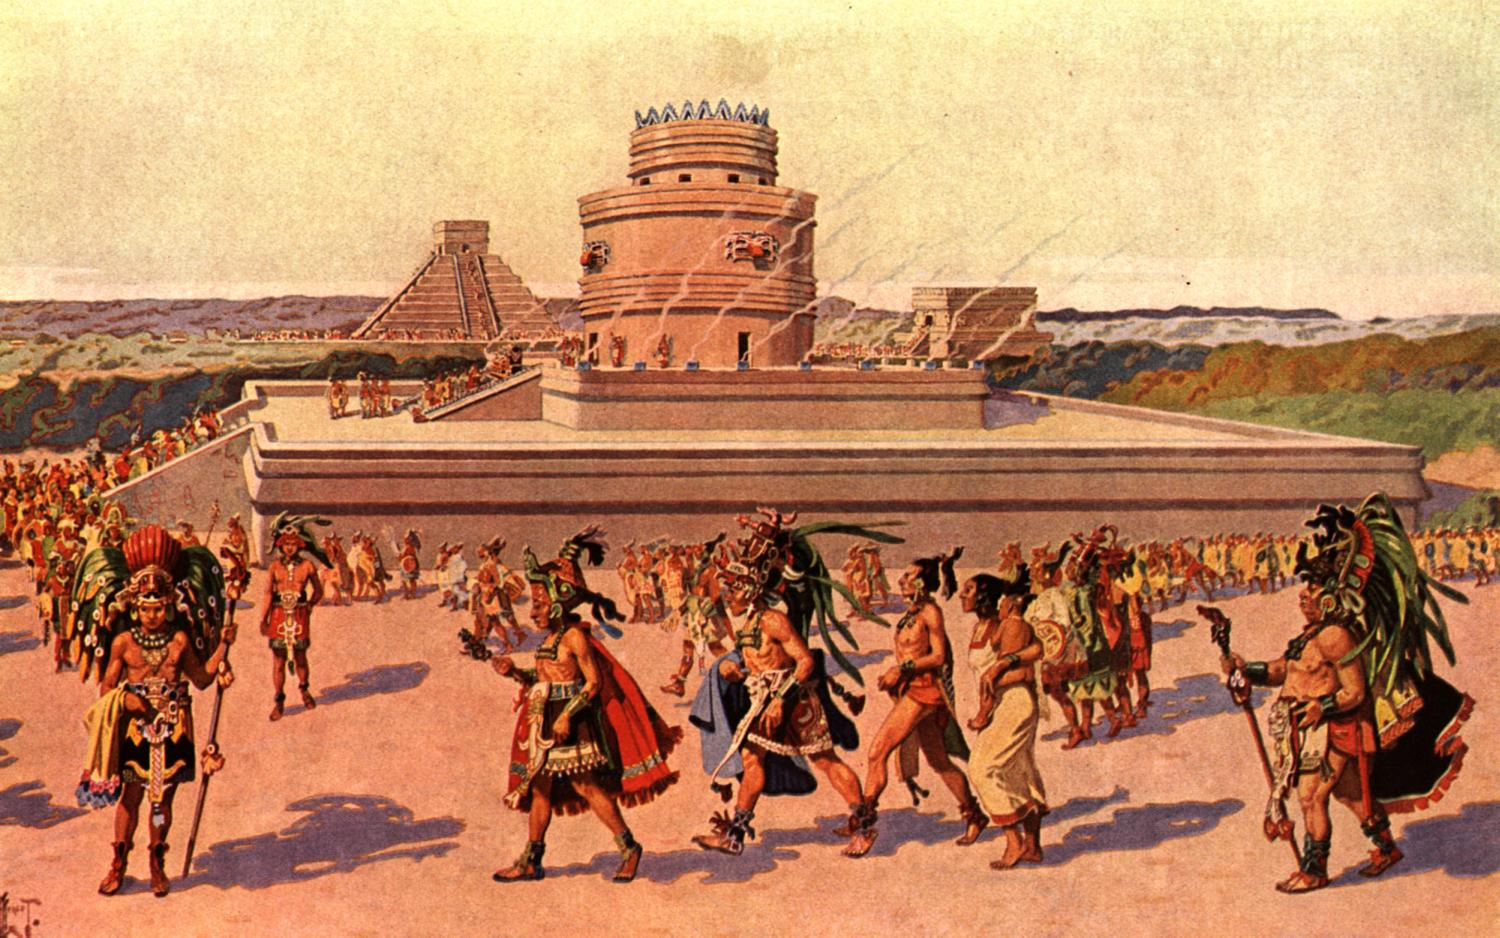 role of climate in the classic maya collapse history essay The latest thinking suggests the mighty maya empire collapsed due to climate  agree that the maya collapse has  fall of the maya in national geographic.